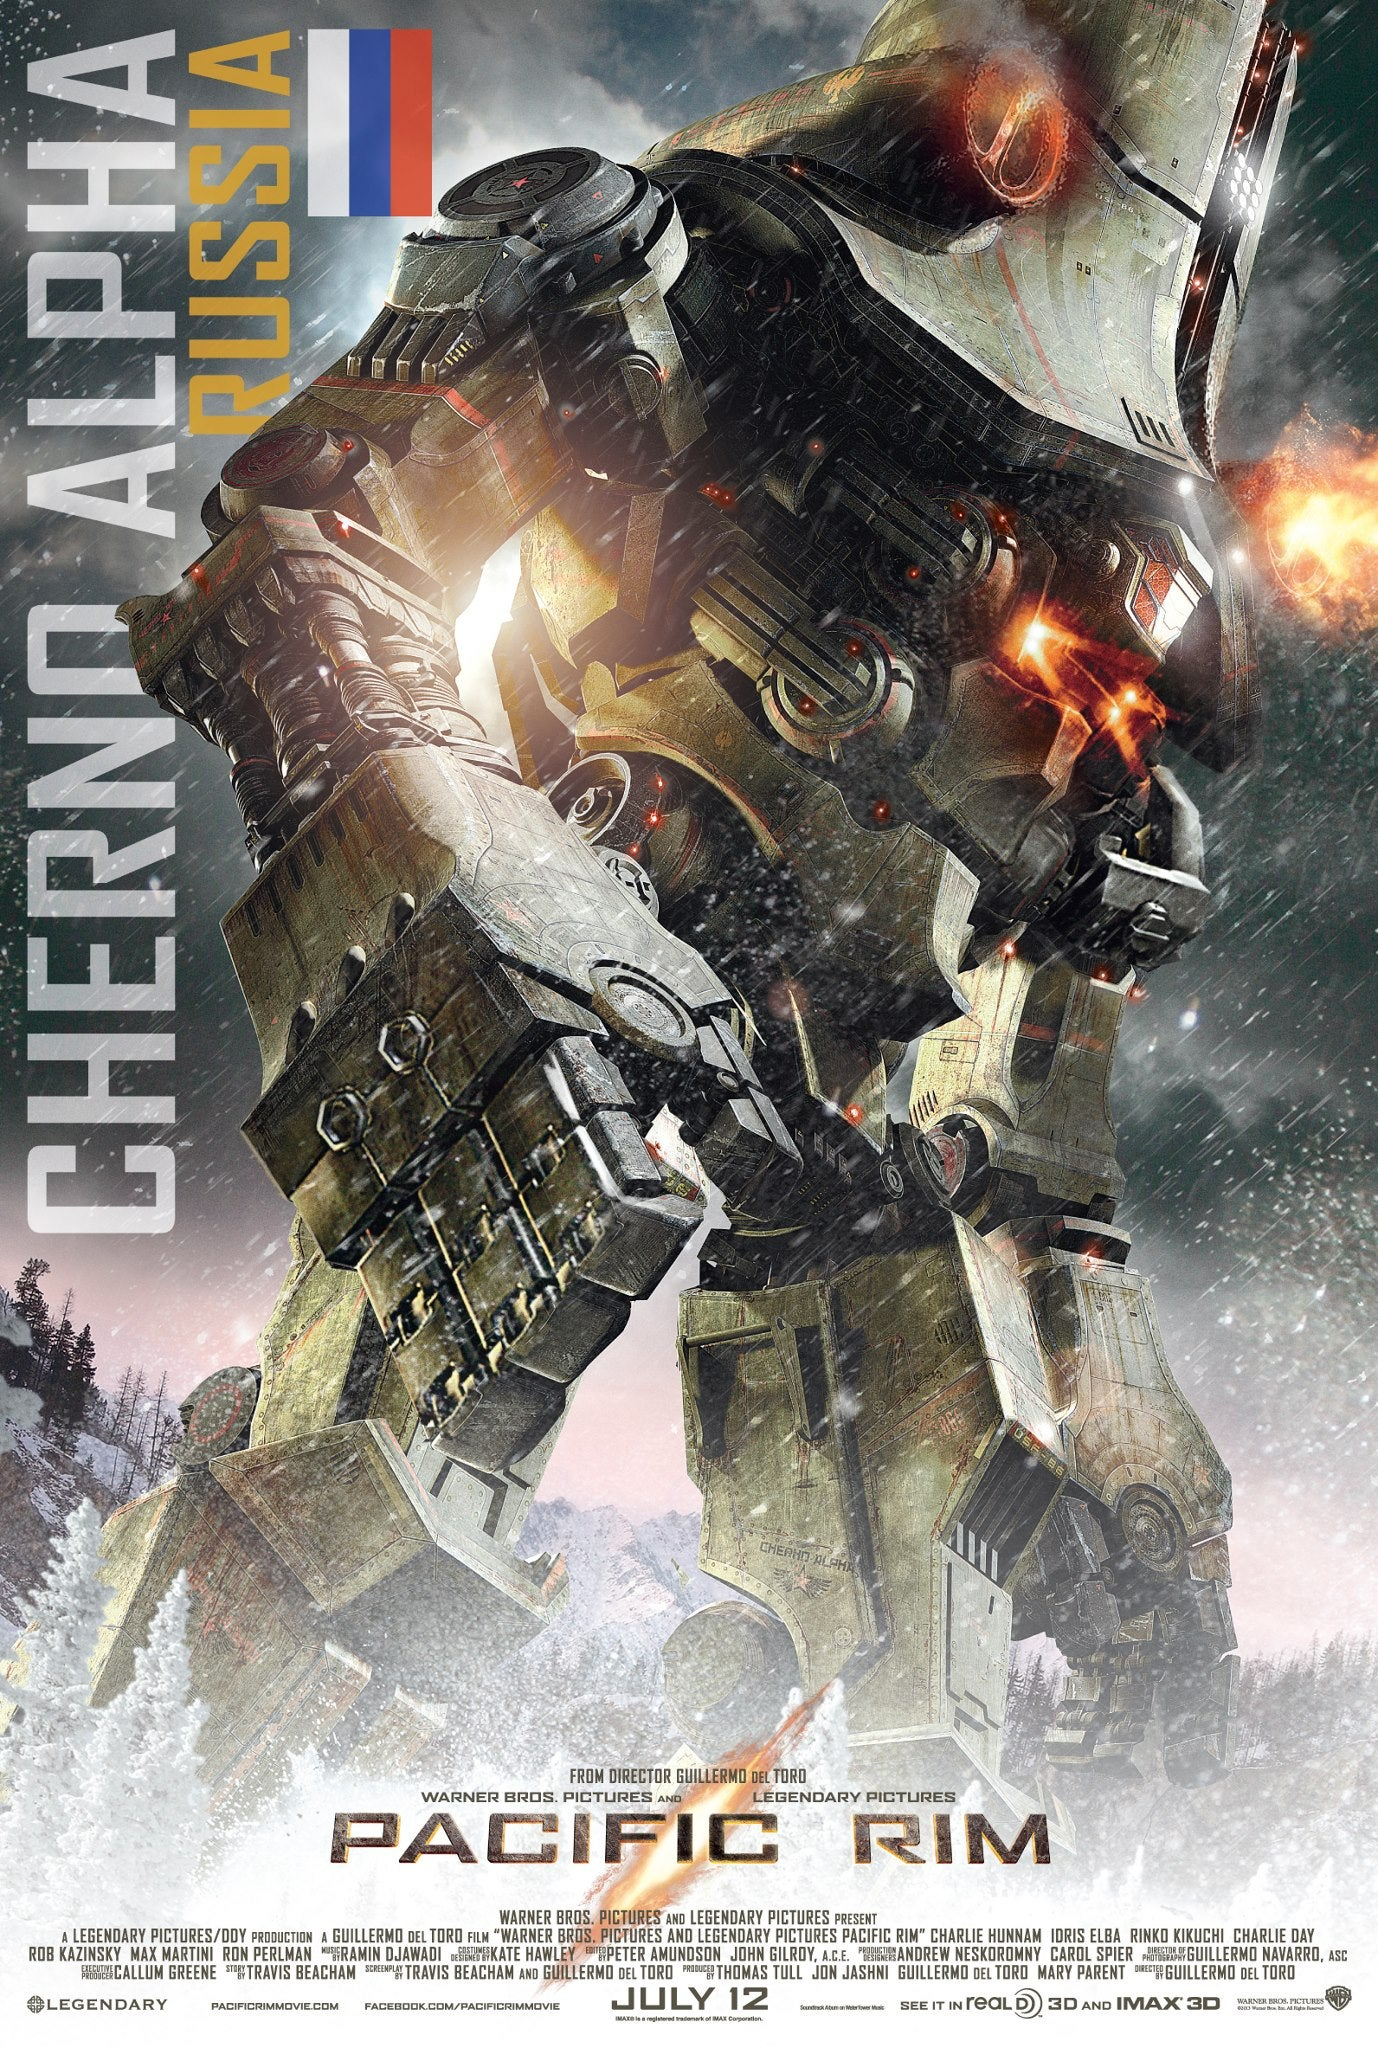 Pacific Rim: Cherno Alpha Poster Revealed